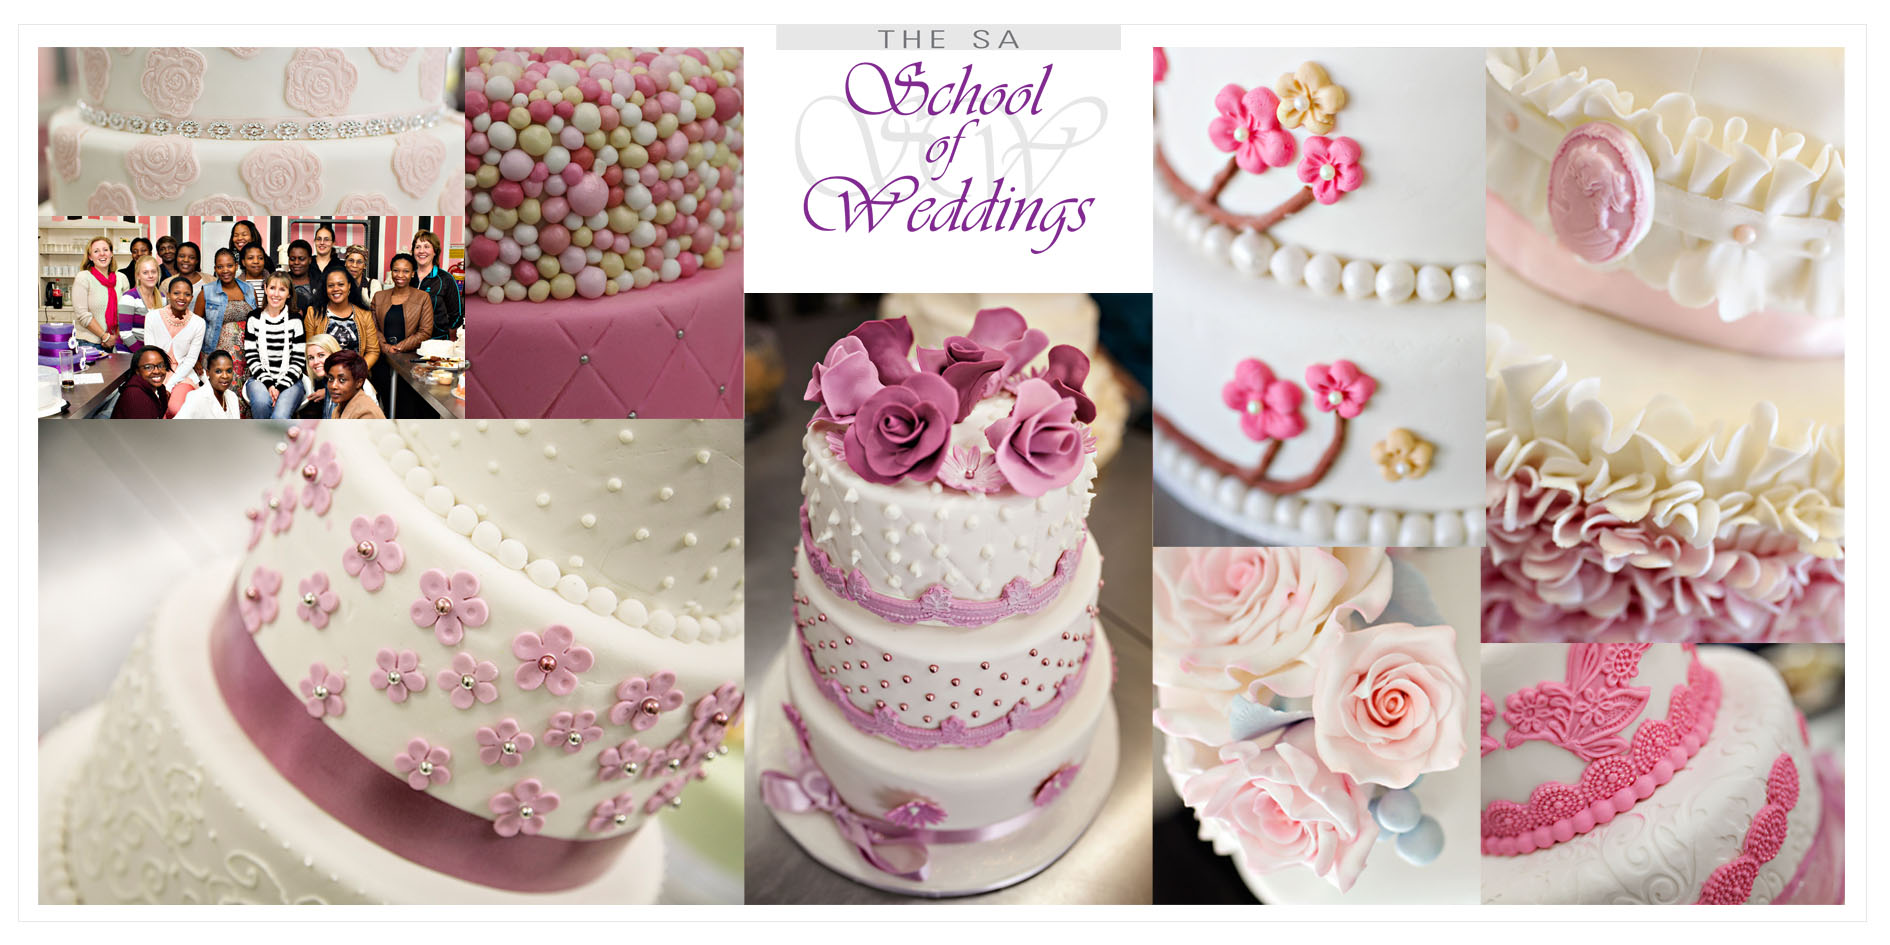 Wedding Cake Courses On Cake Baking Decorating Baking Classes Johannesburg